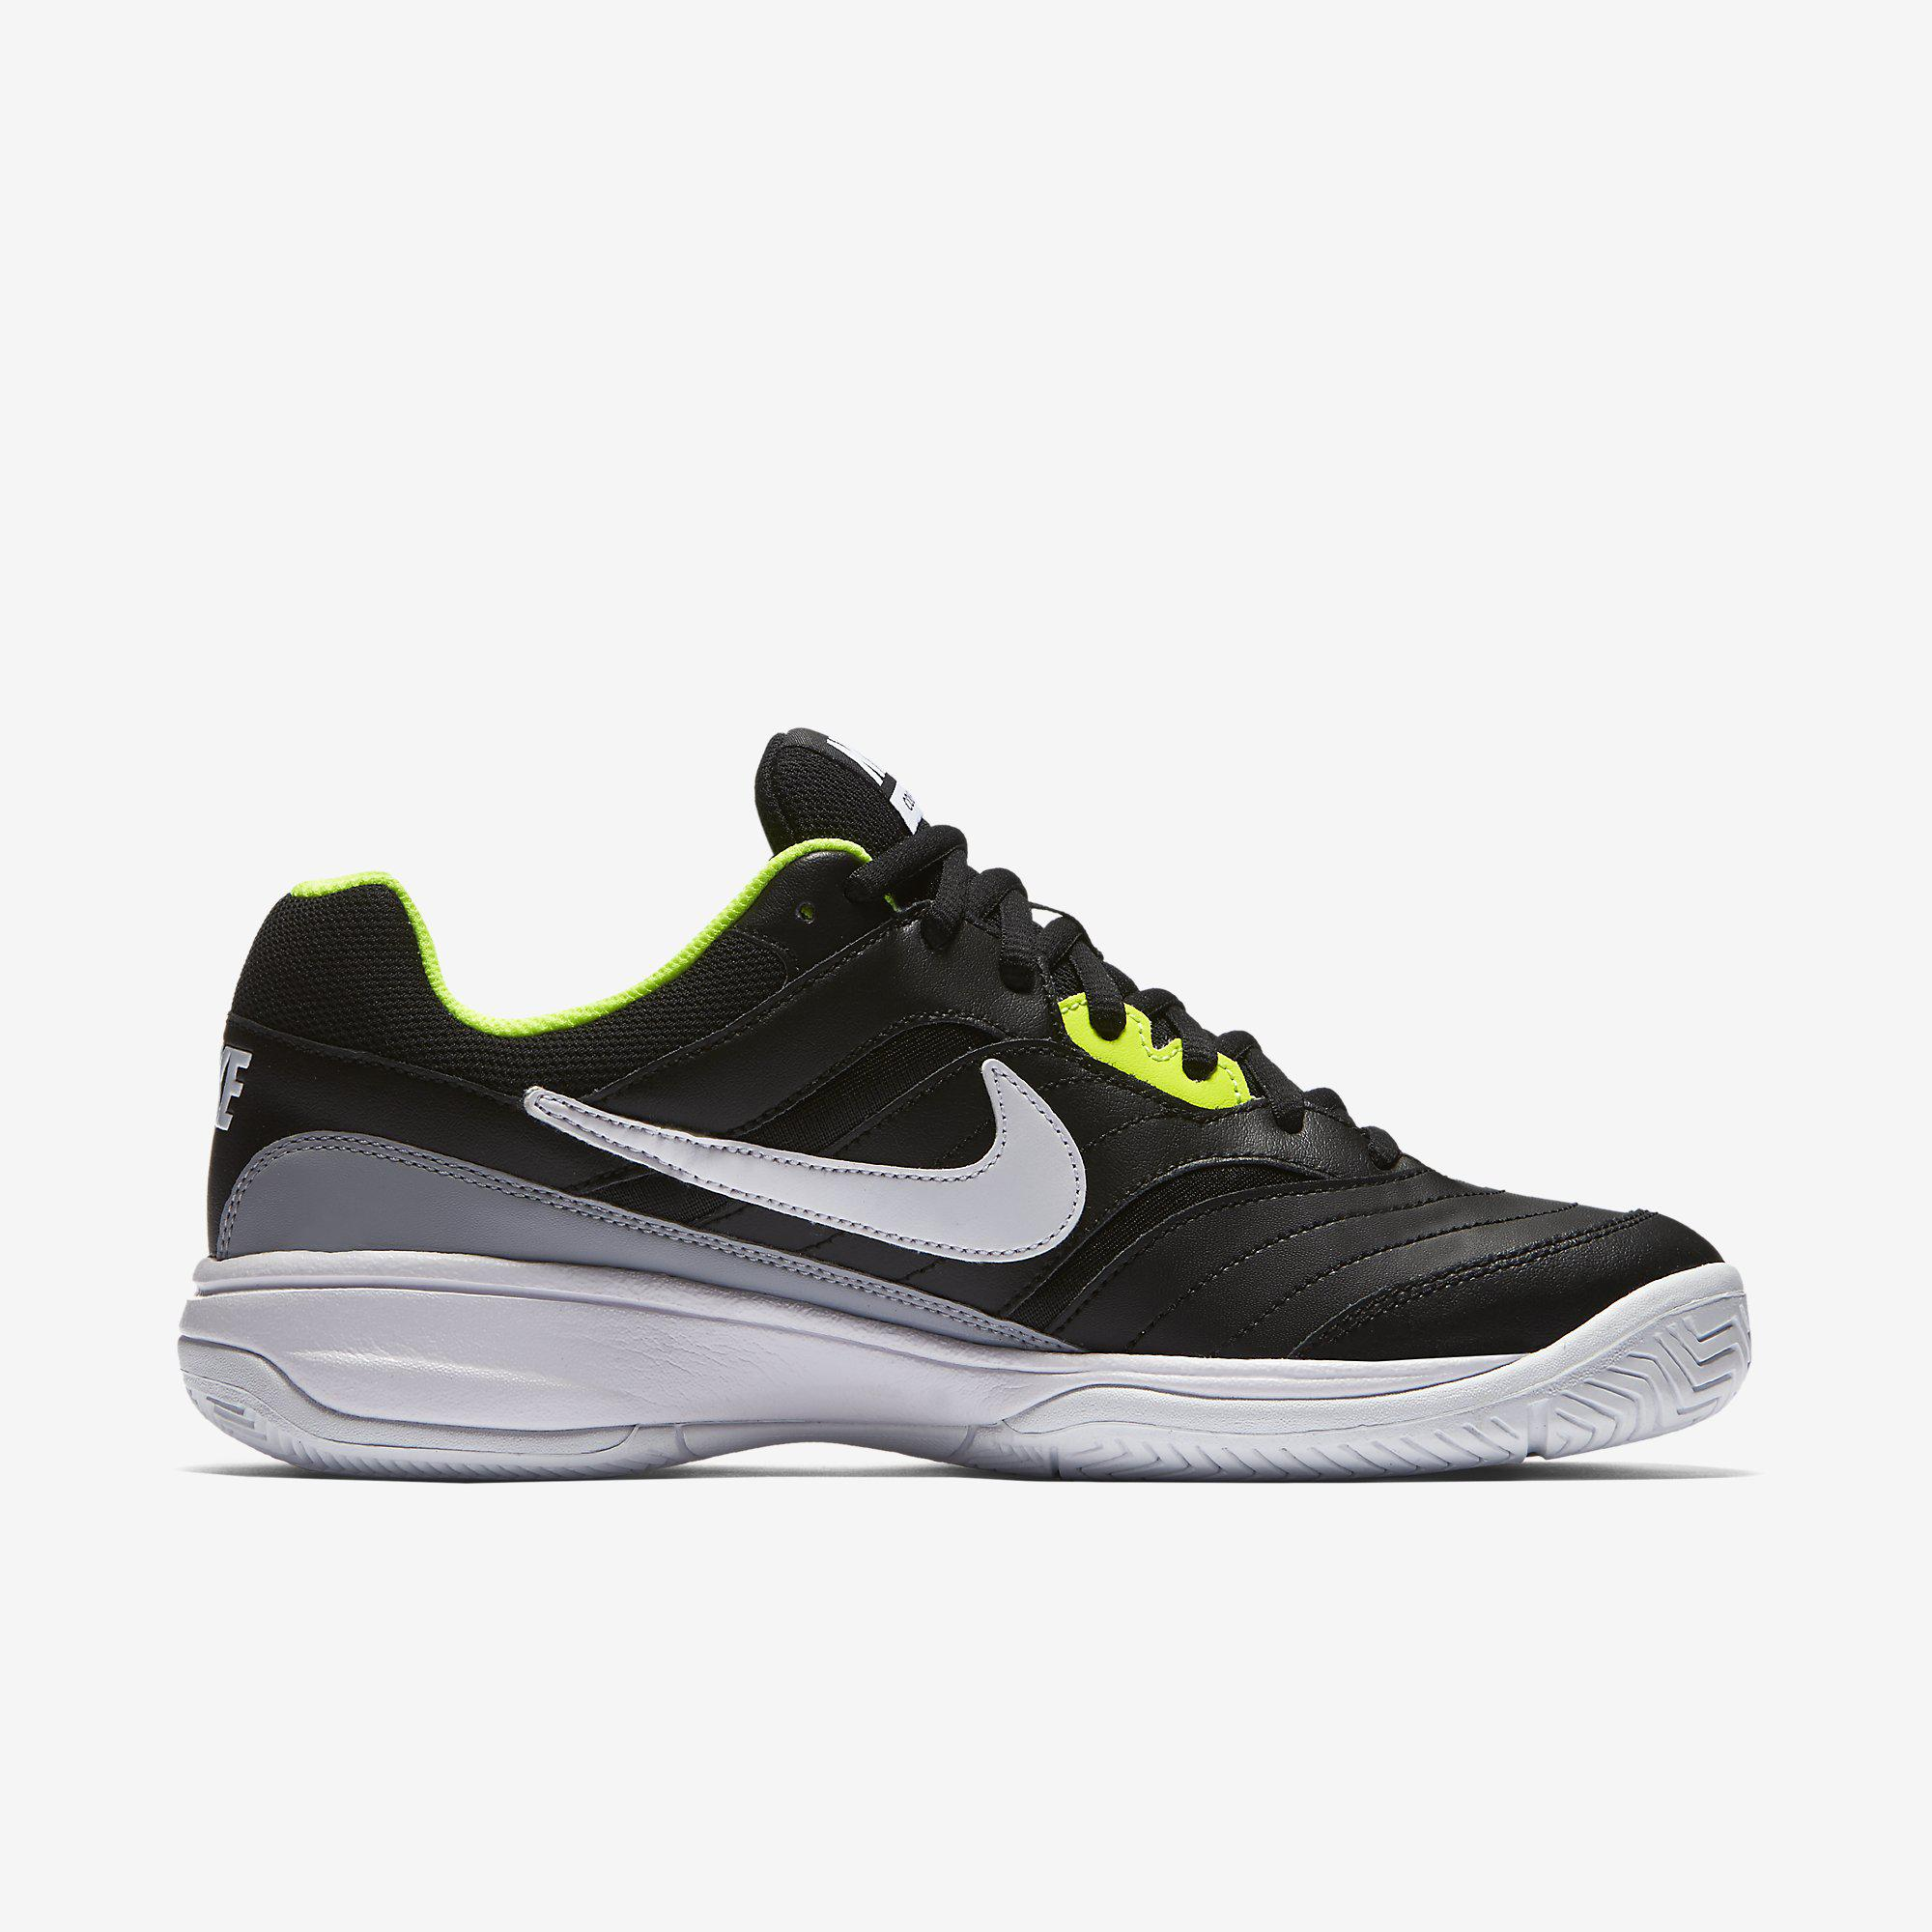 Nike Mens Court Lite Tennis Shoes - Black/Grey ...